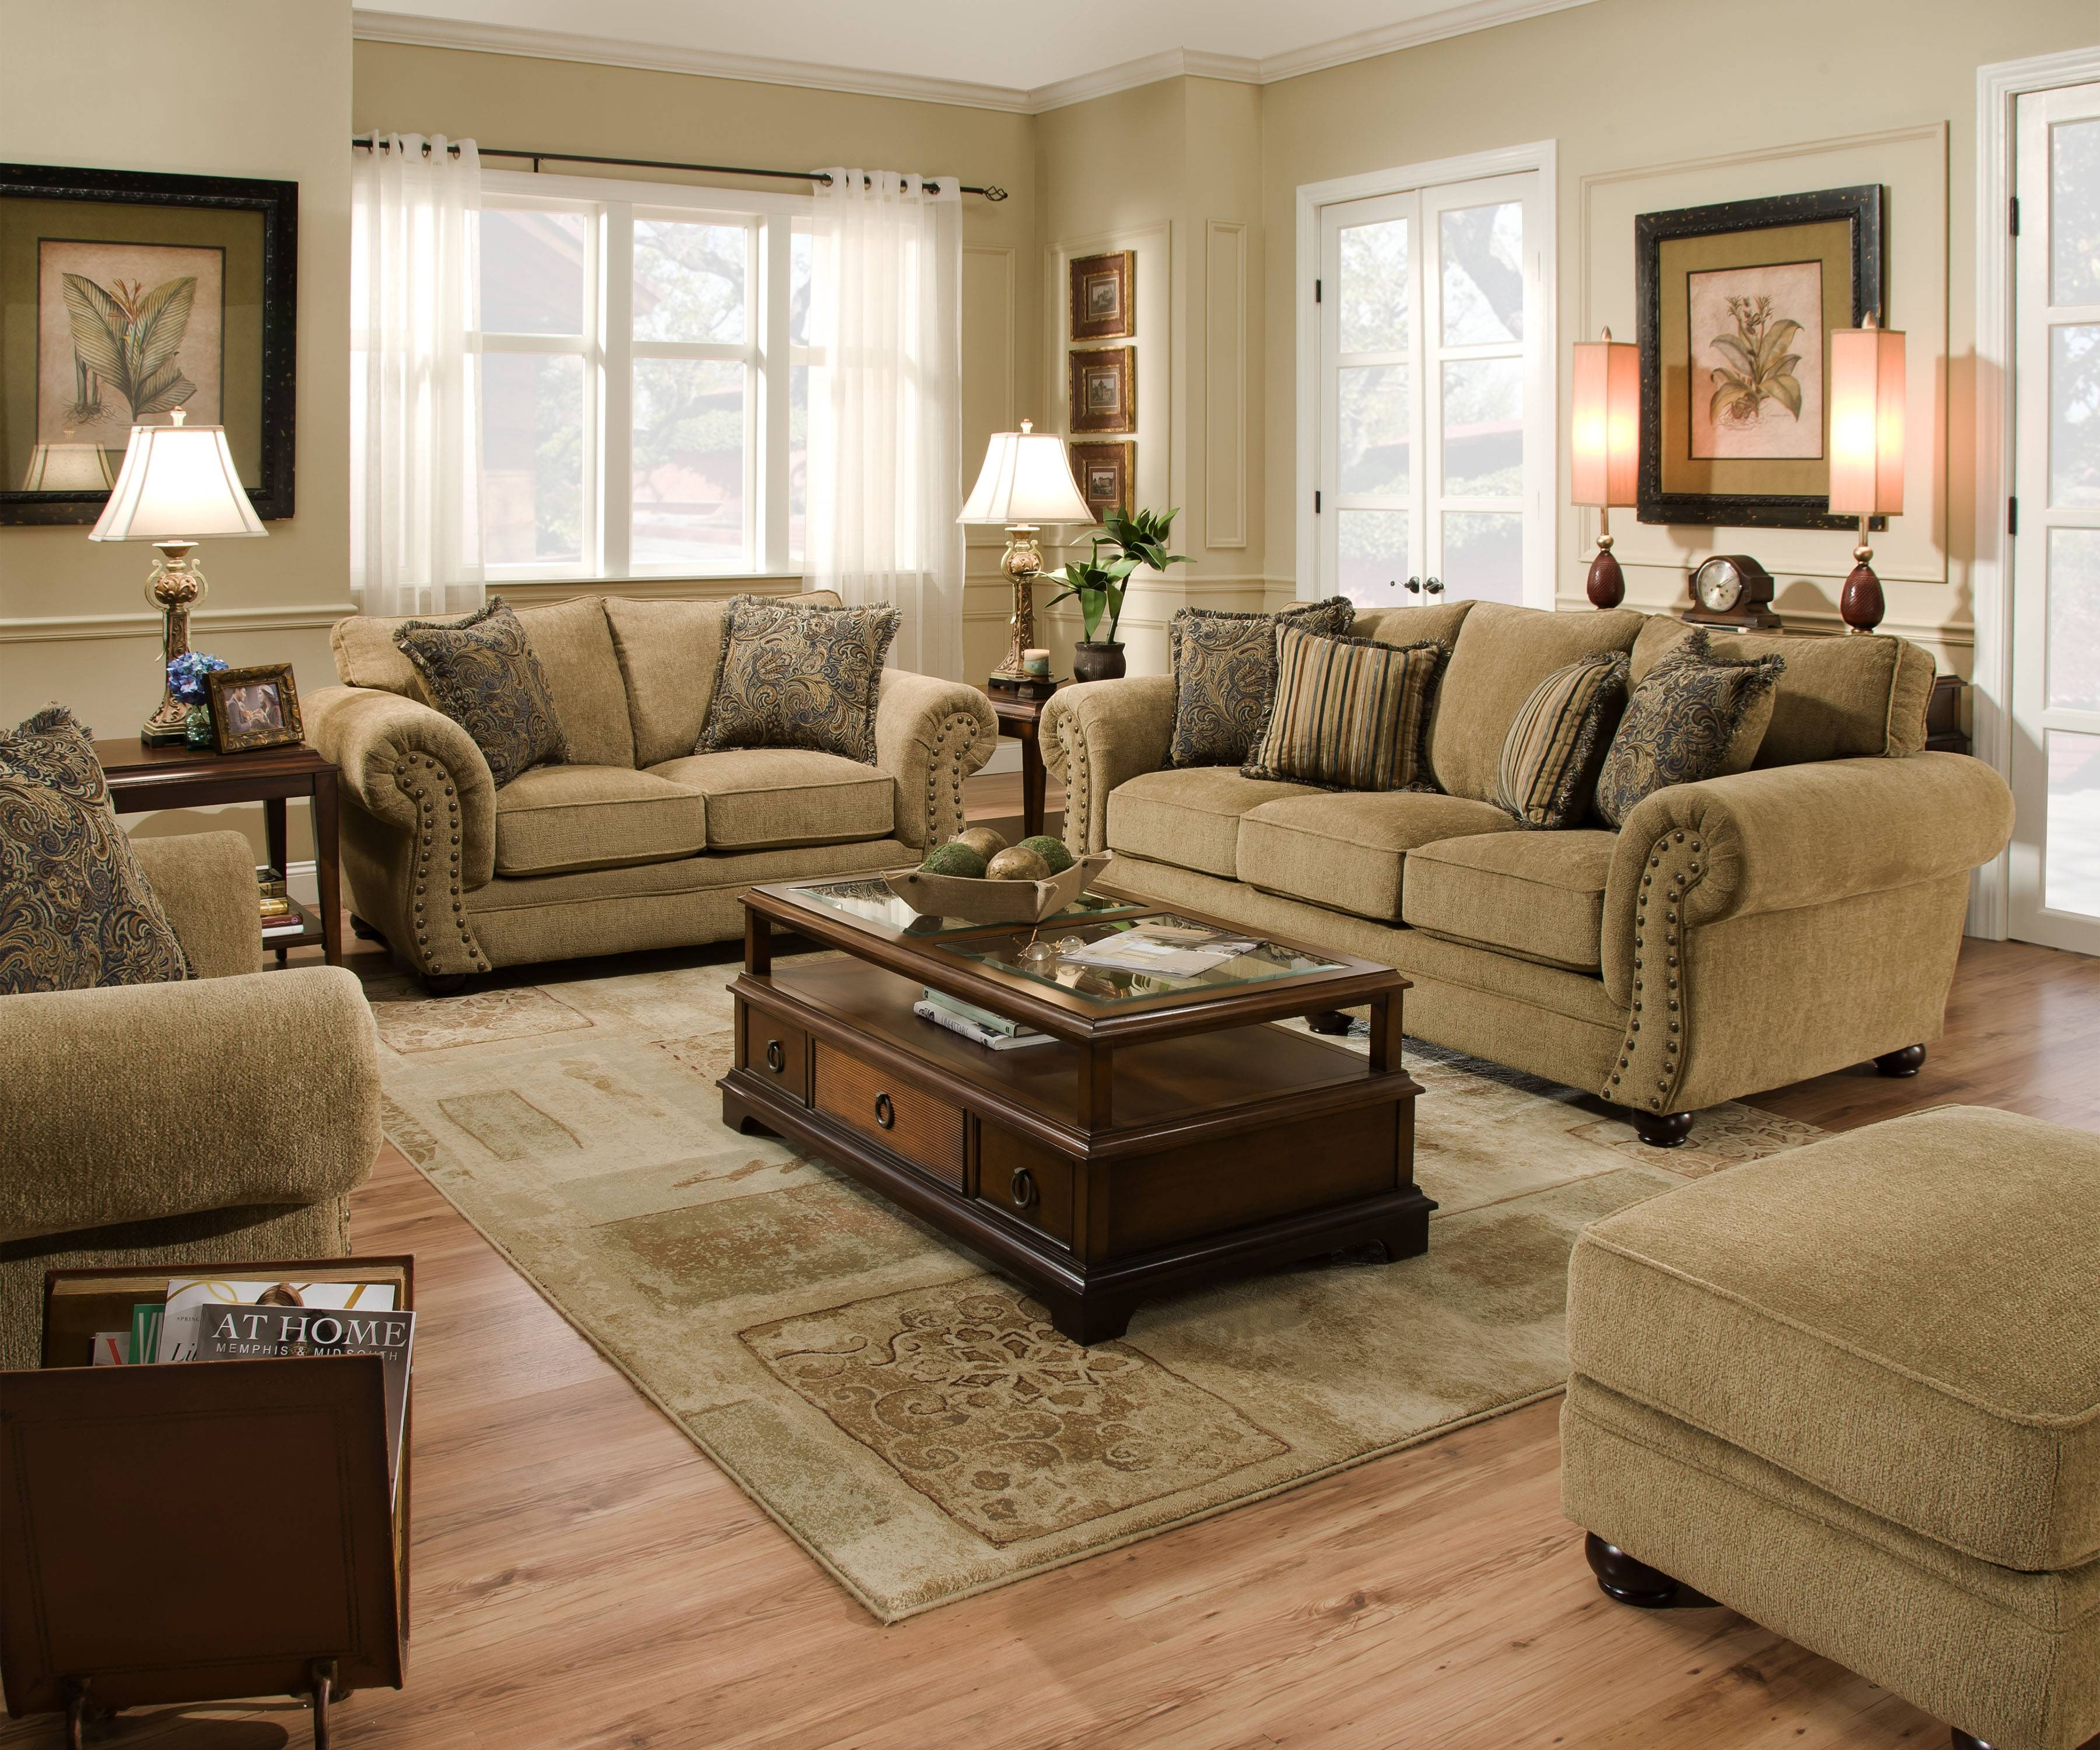 4277 - United Furniture Industries pertaining to Simmons Sofas and Loveseats (Image 4 of 15)